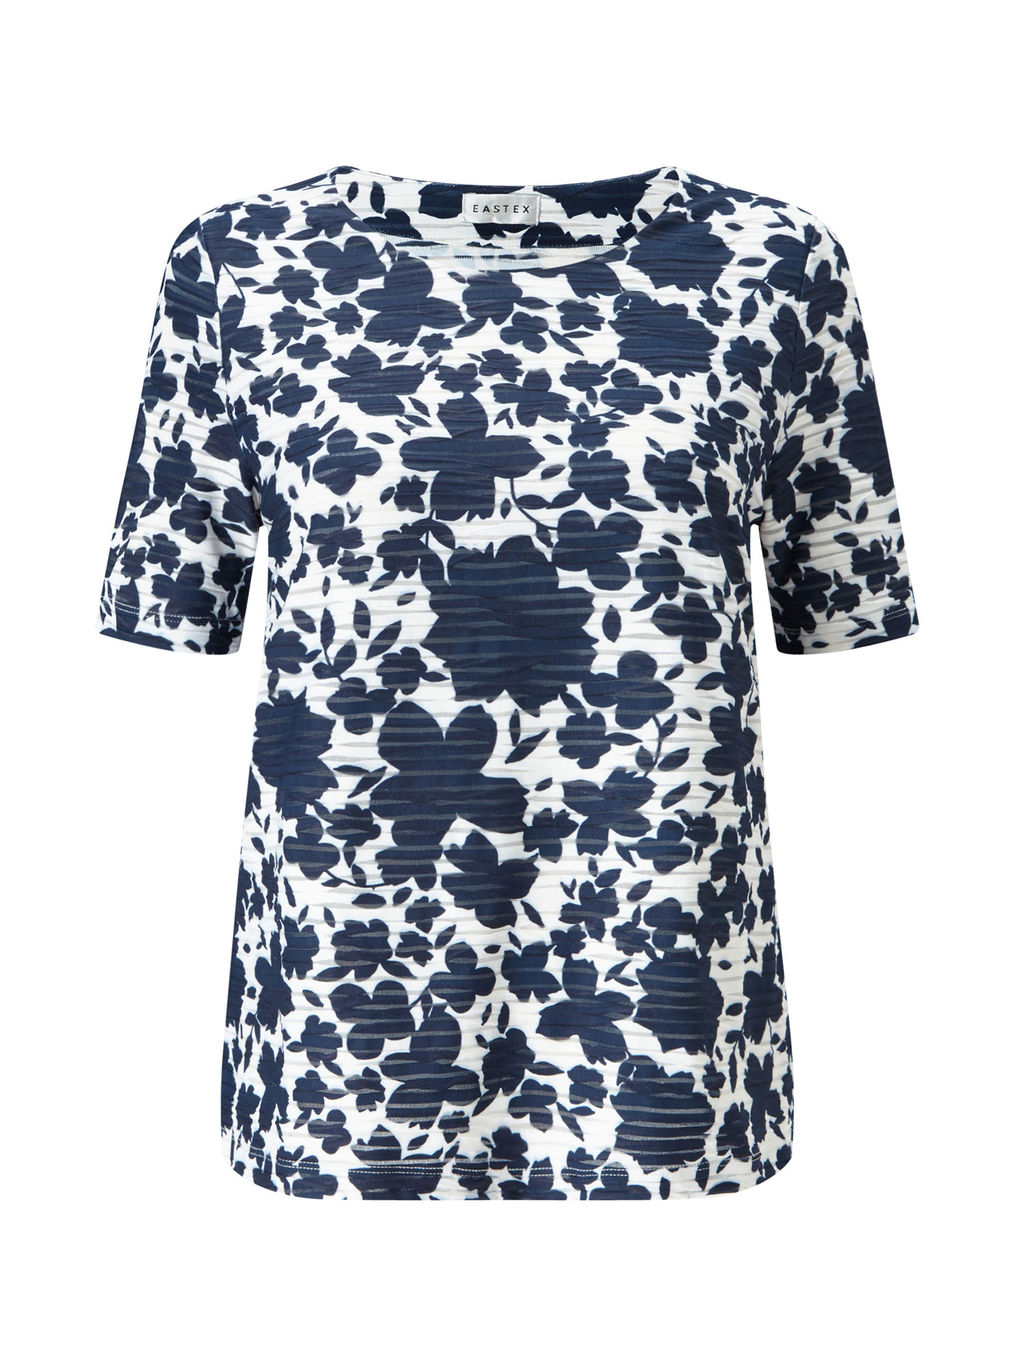 Mixed Texture Floral Top - predominant colour: white; secondary colour: navy; occasions: casual; length: standard; style: top; fibres: polyester/polyamide - stretch; fit: body skimming; neckline: crew; sleeve length: short sleeve; sleeve style: standard; pattern type: fabric; pattern: florals; texture group: jersey - stretchy/drapey; pattern size: big & busy (top); multicoloured: multicoloured; season: s/s 2016; wardrobe: highlight